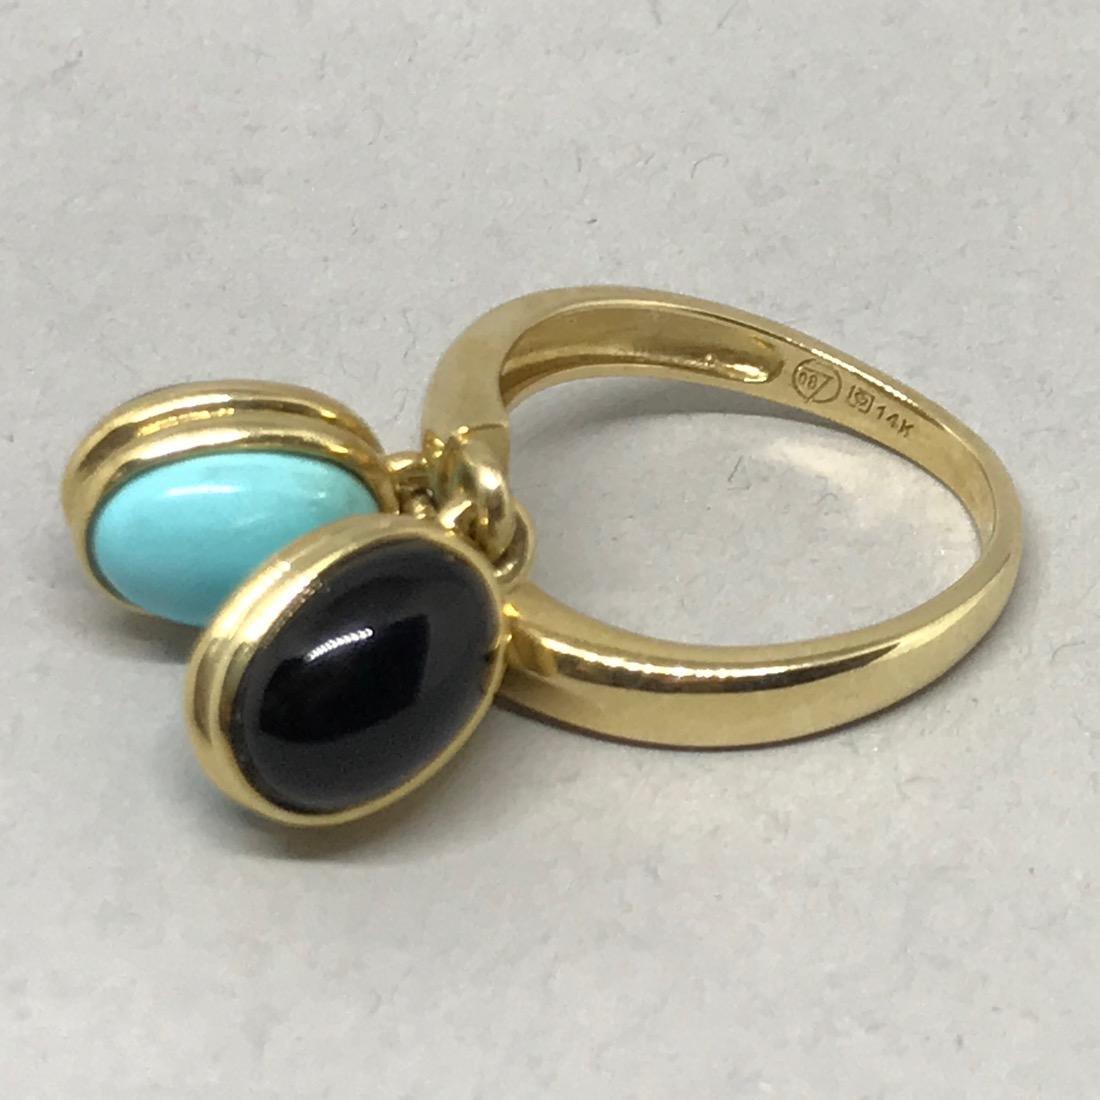 14Kt Gold Ring with Onyx & Turquoise - 3